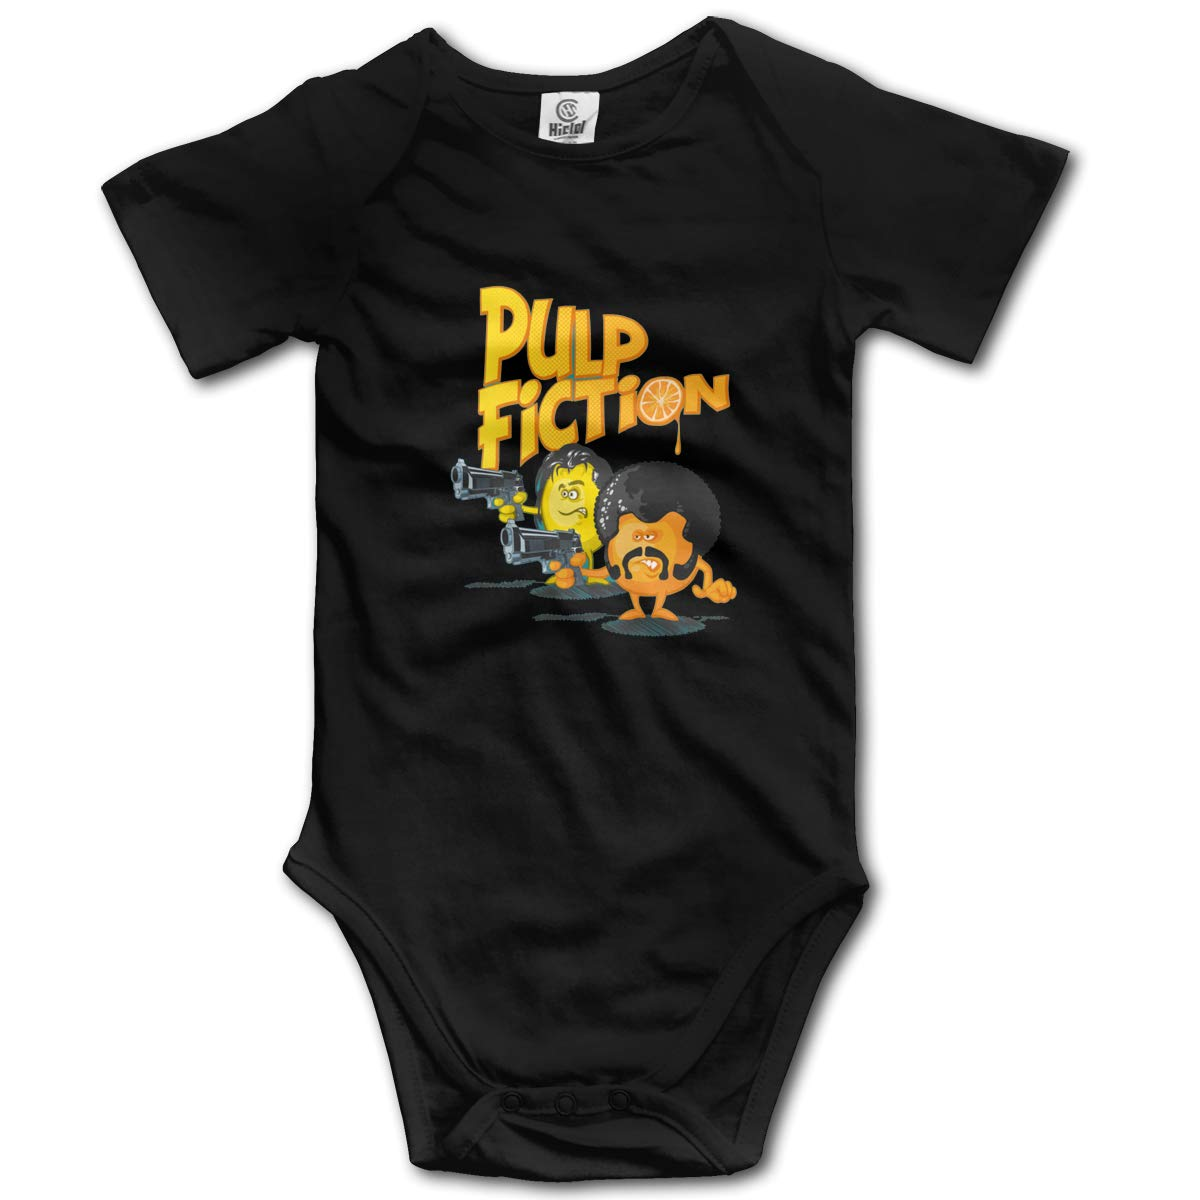 Coollifea Pulp Fiction Baby Romper 0-18 Months Newborn Baby Girls Boys Layette Rompers Black